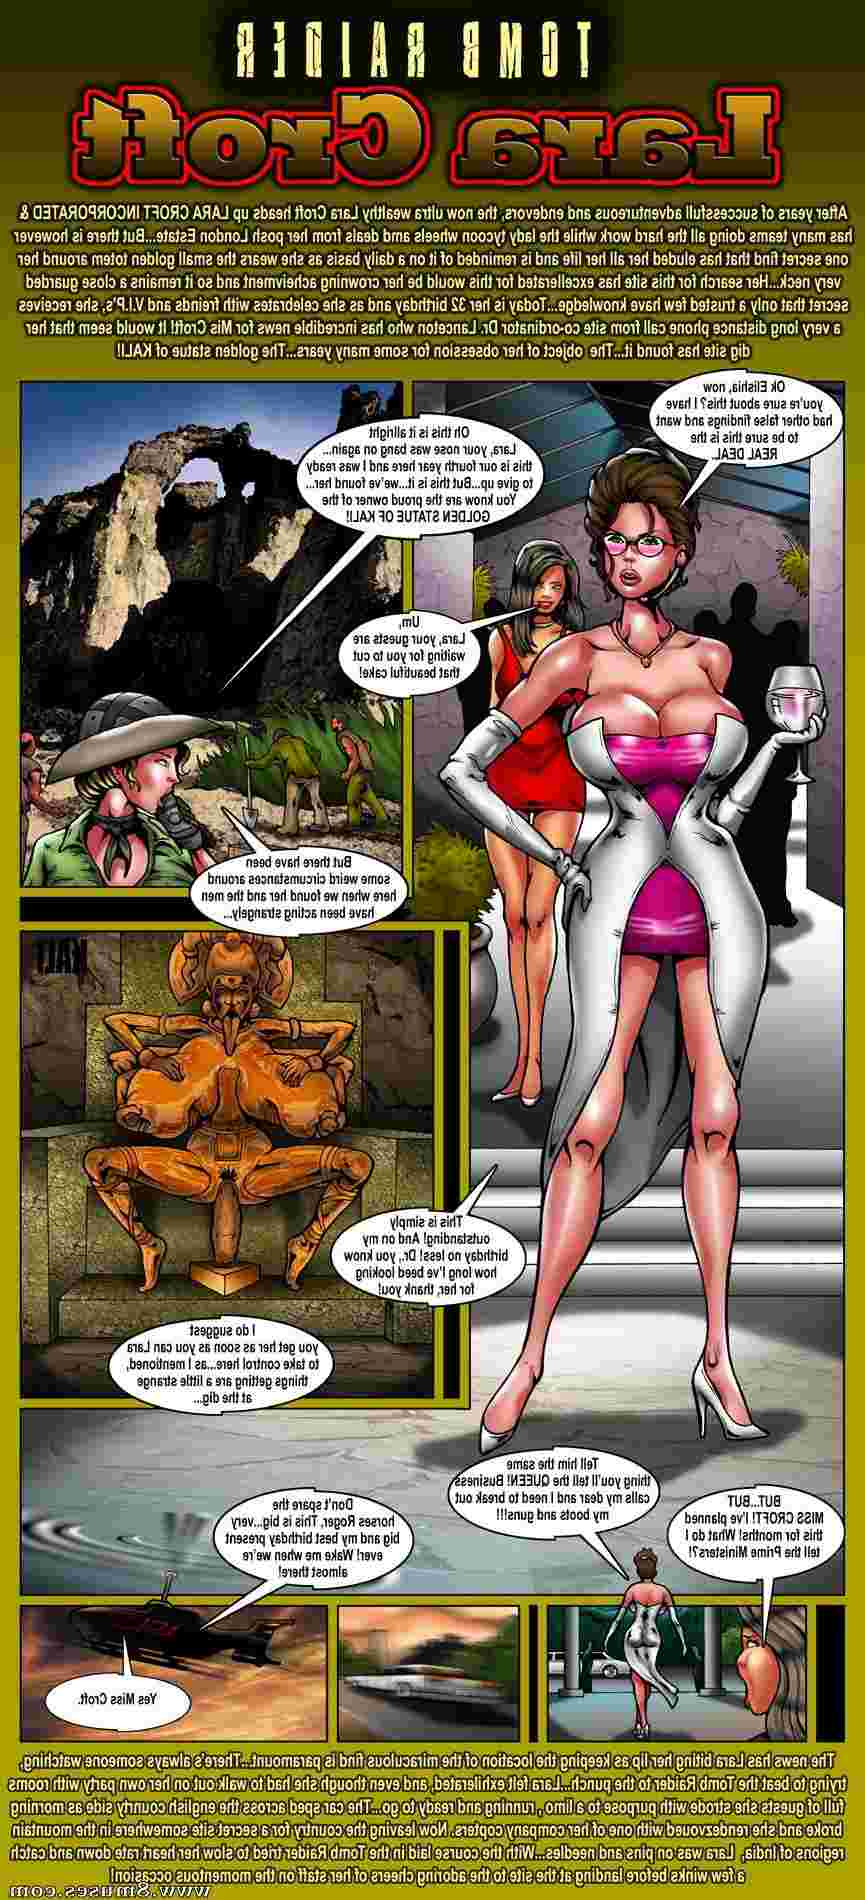 Smudge-Comics/Superheroes/Tomb-Raider-Lara-Croft Tomb_Raider_-_Lara_Croft__8muses_-_Sex_and_Porn_Comics.jpg